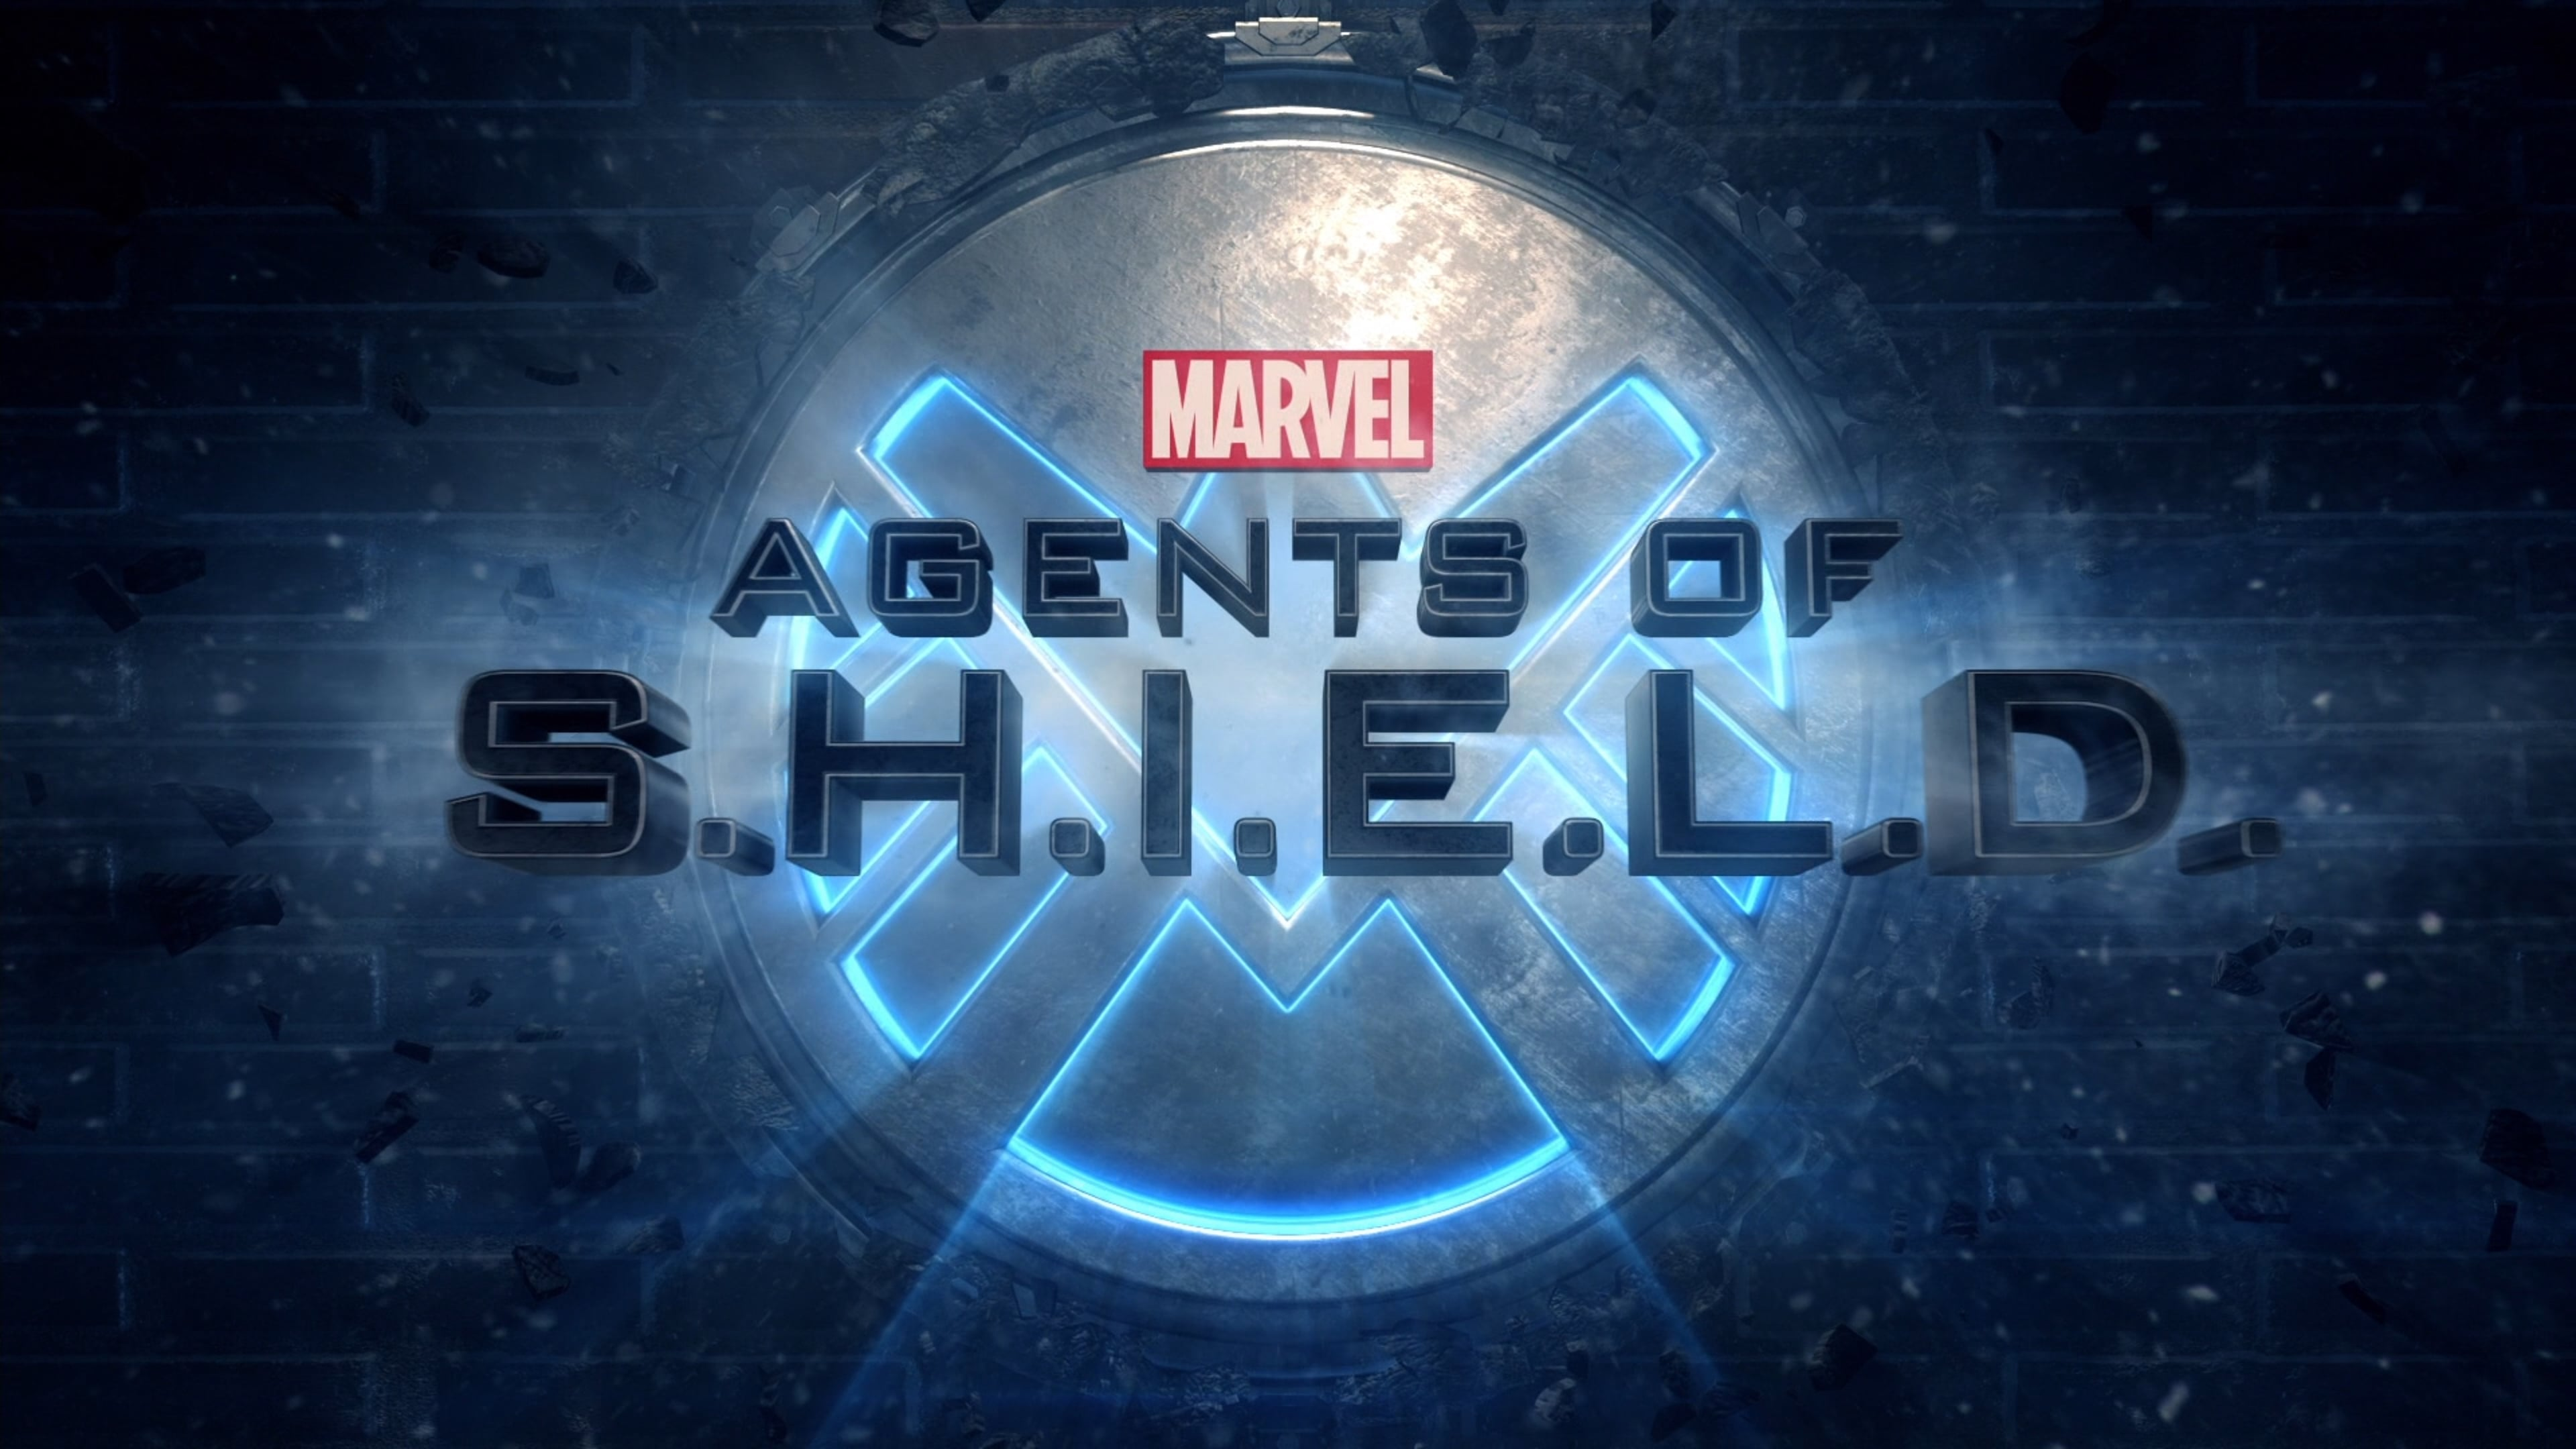 Marvel's Agents of S.H.I.E.L.D. - Season 0 Episode 17 : Academy: Inhuman Adaptation Challenge